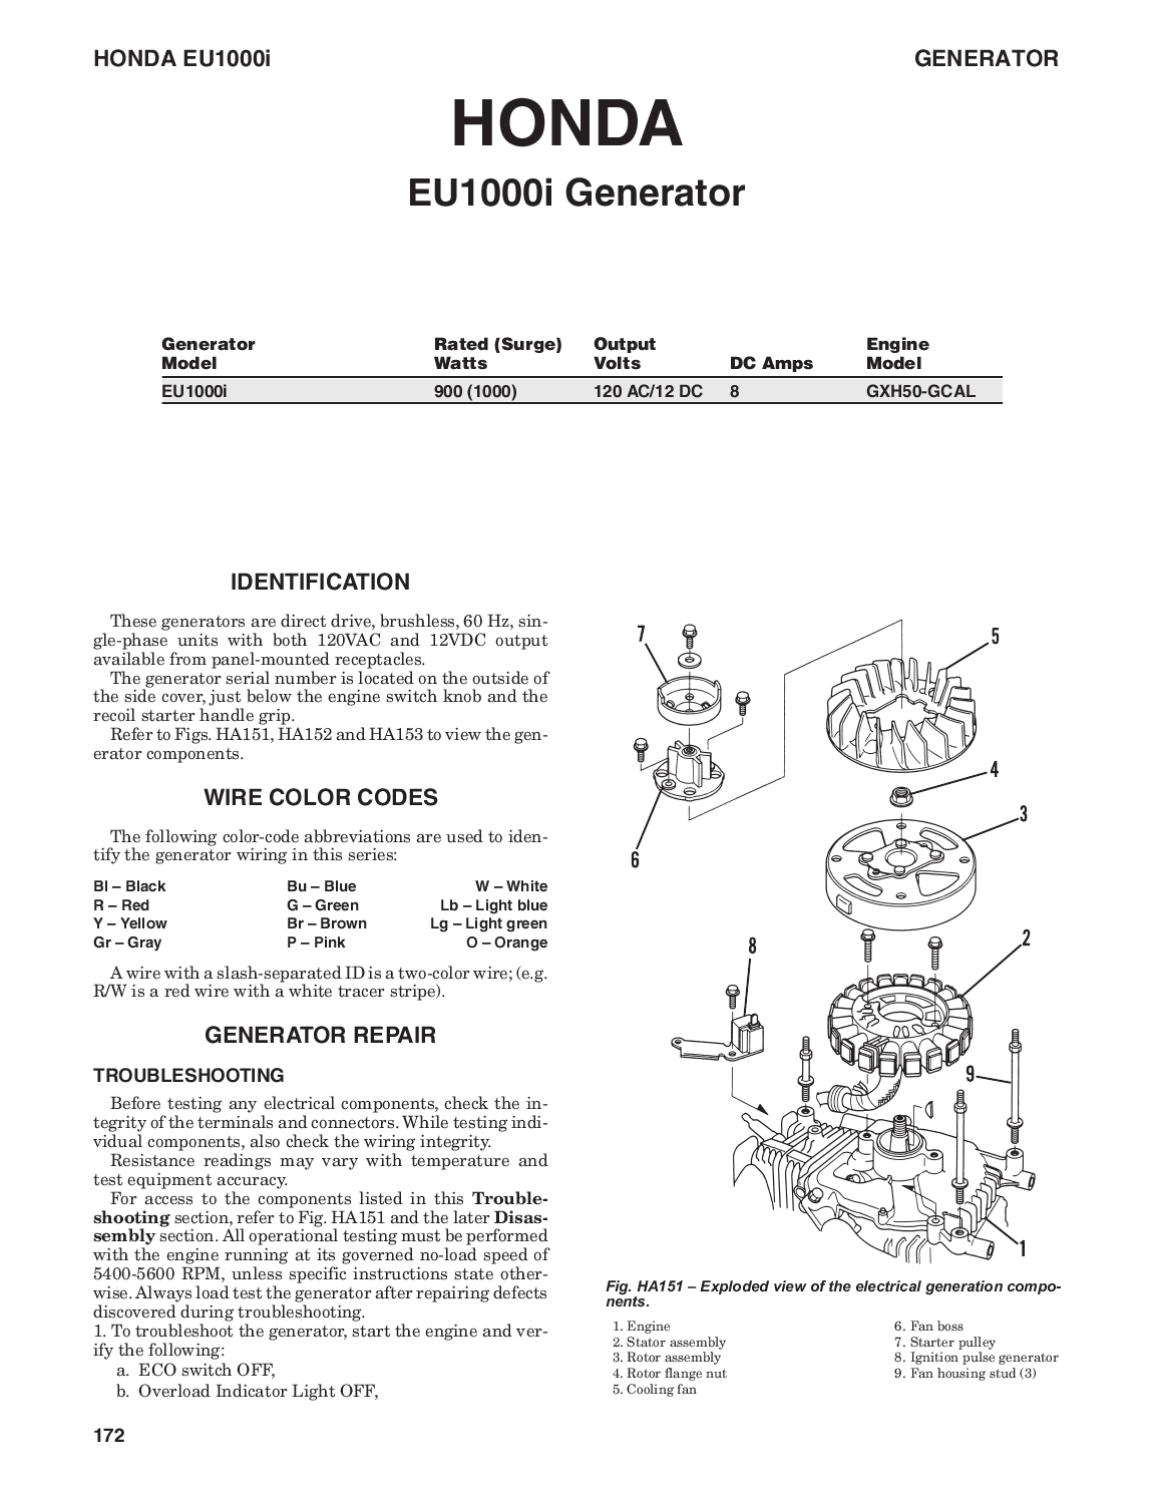 Honda Generator Wiring Diagram Free Download Wiring Diagram Also Honda